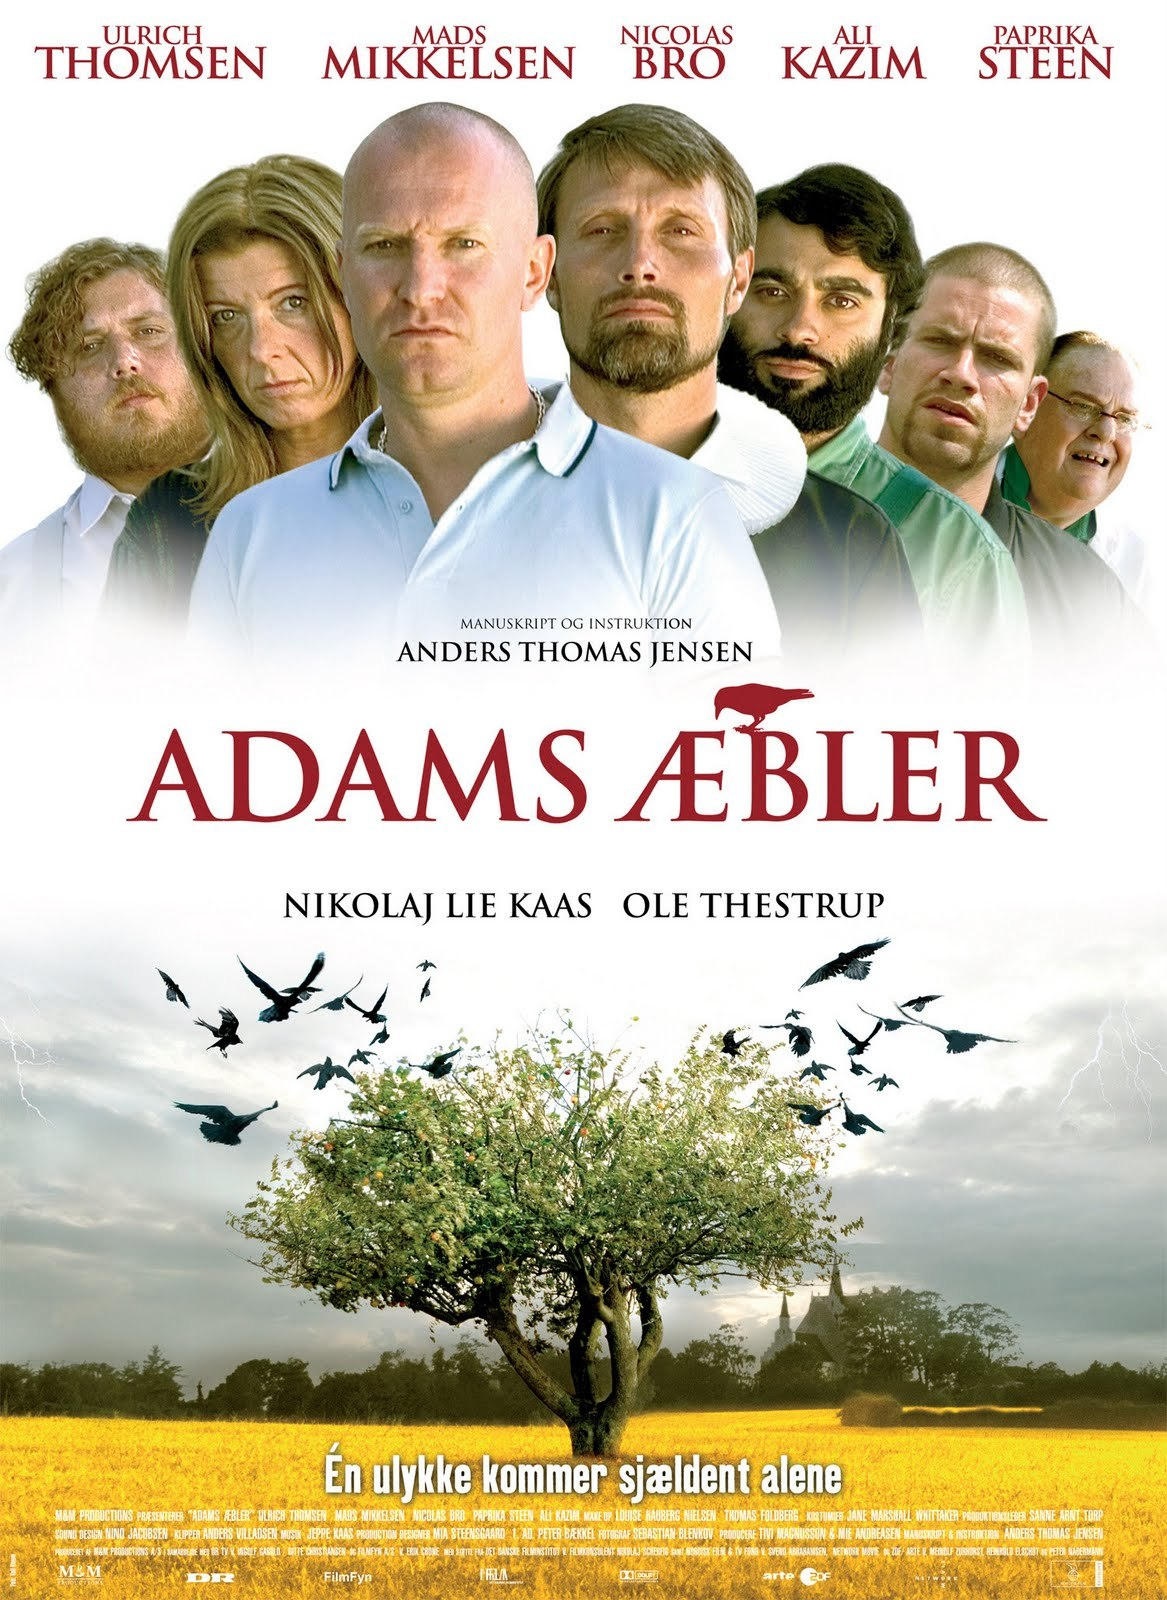 NOW WATCHING: ADAMS ÆBLER